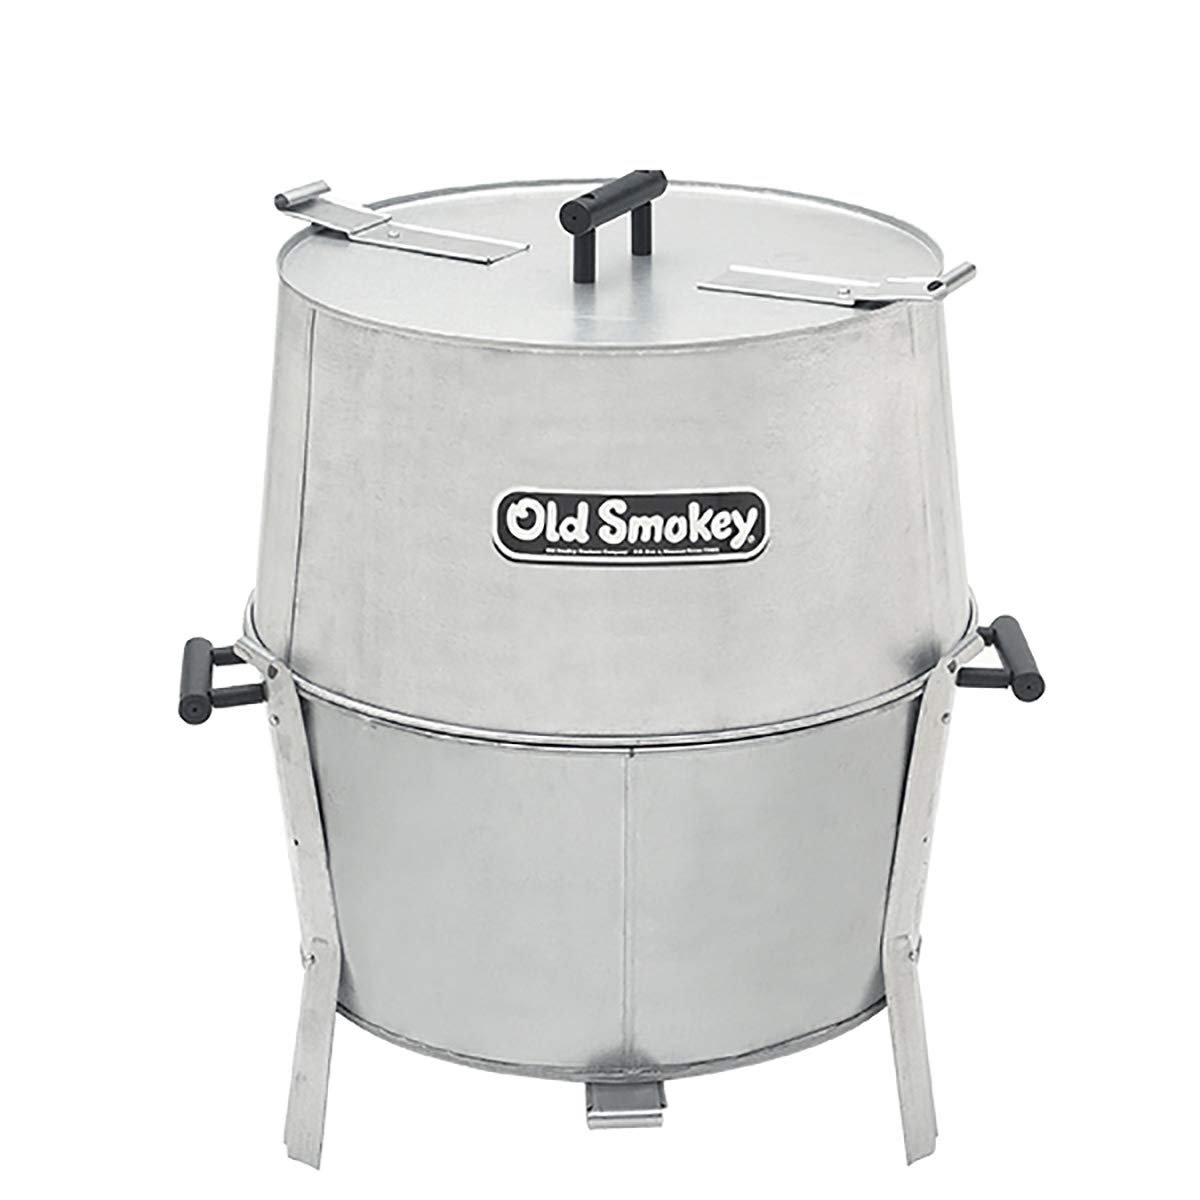 Old Smokey Charcoal Grill 22 Large